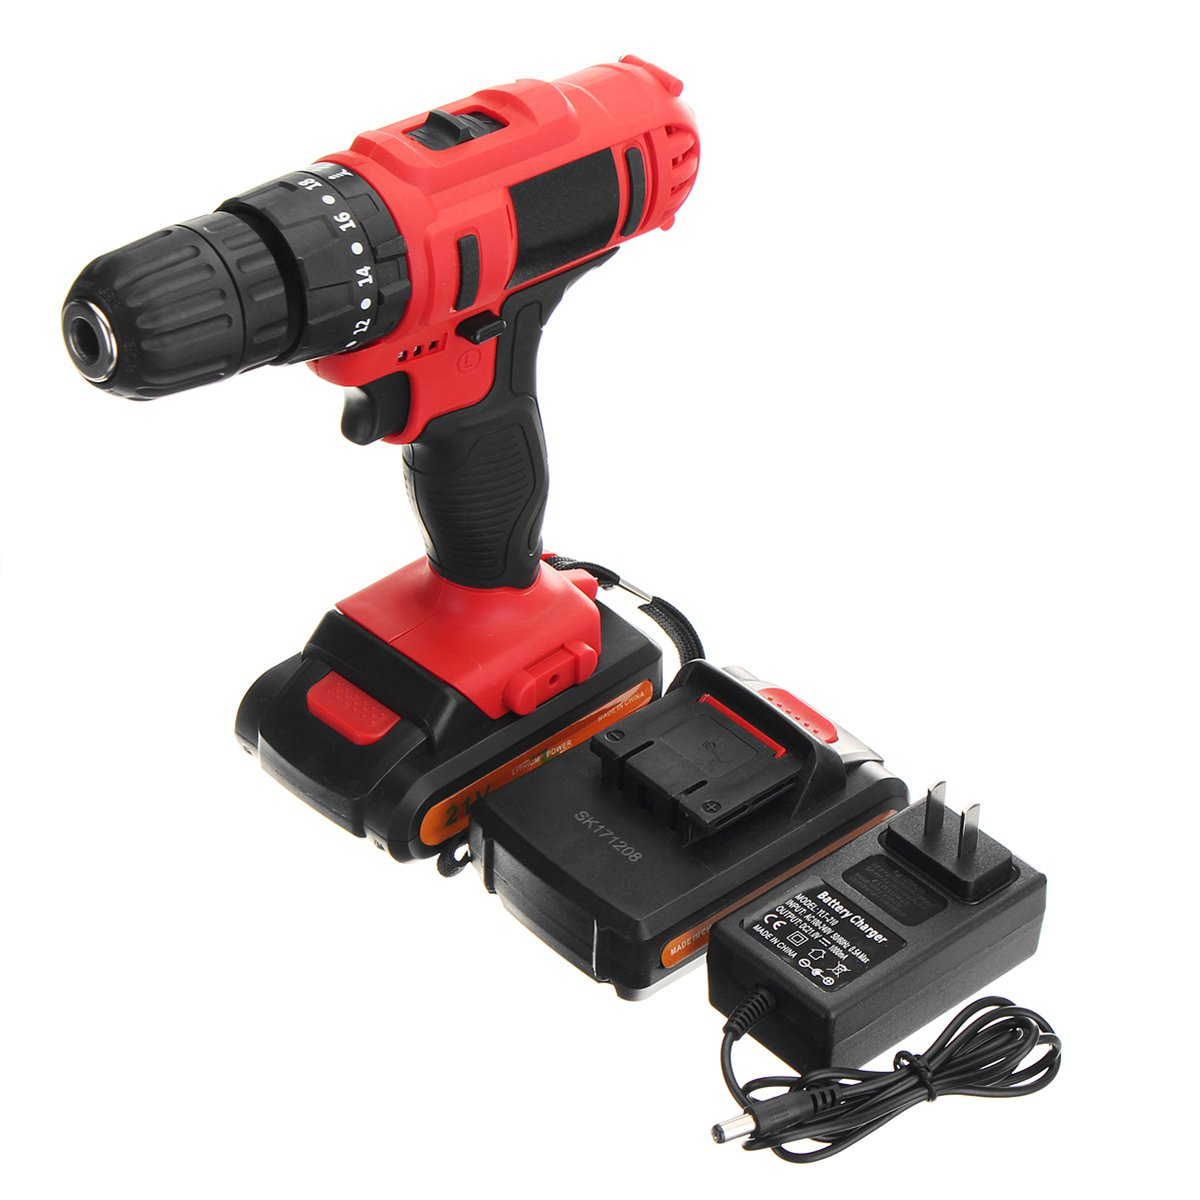 21V Cordless Rechargeable Screwdriver Li ion Torque Drill Mini Electric Screwdriver Home Waterproof Power Tools 21v battery screwdriver electric mini cordless two speed charged drill power tools impact li ion screwdriver drille